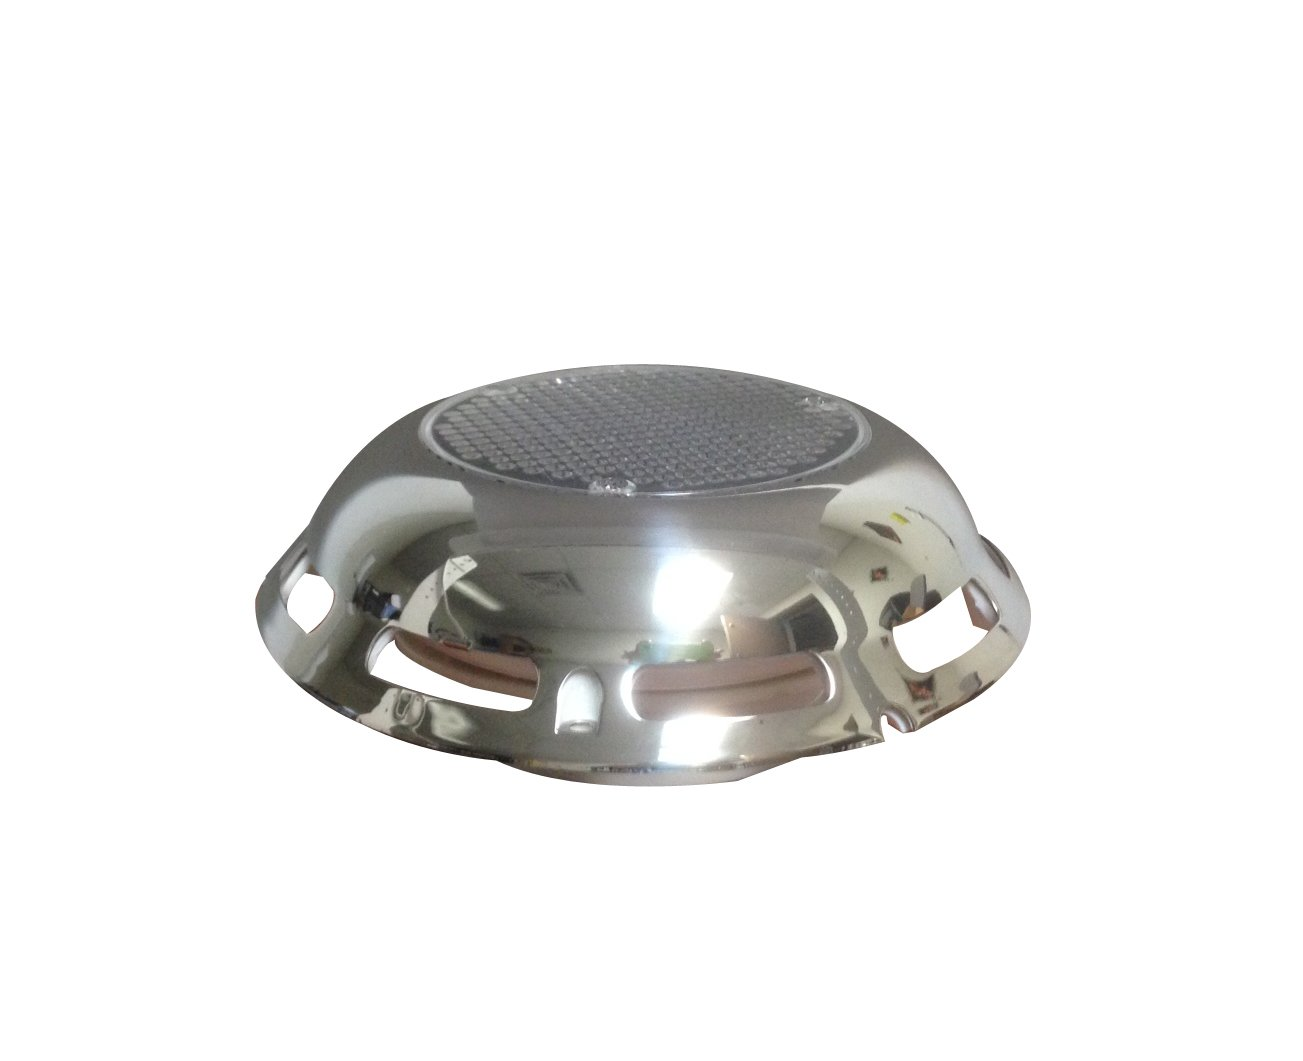 Pactrade Marine Boat 700CU FT Solar Powered 24HRS Ventilator Stainless Steel Cover by Pactrade Marine